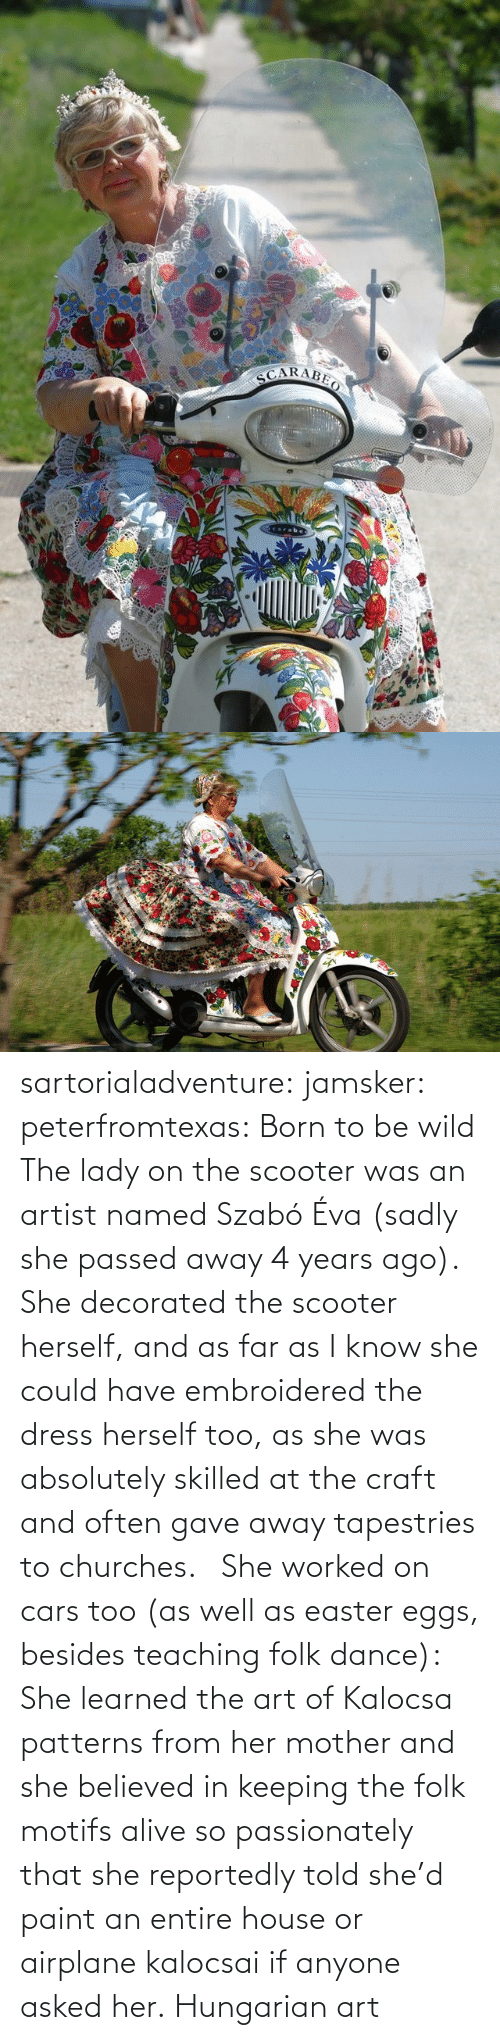 She Was: sartorialadventure: jamsker:  peterfromtexas: Born to be wild The lady on the scooter was an artist named Szabó Éva (sadly she passed away 4 years ago). She decorated the scooter herself, and as far as I know she could have embroidered the dress herself too, as she was absolutely skilled at the craft and often gave away tapestries to churches.   She worked on cars too (as well as easter eggs, besides teaching folk dance): She learned the art of Kalocsa patterns from her mother and she believed in keeping the folk motifs alive so passionately that she reportedly told she'd paint an entire house or airplane kalocsai if anyone asked her.  Hungarian art